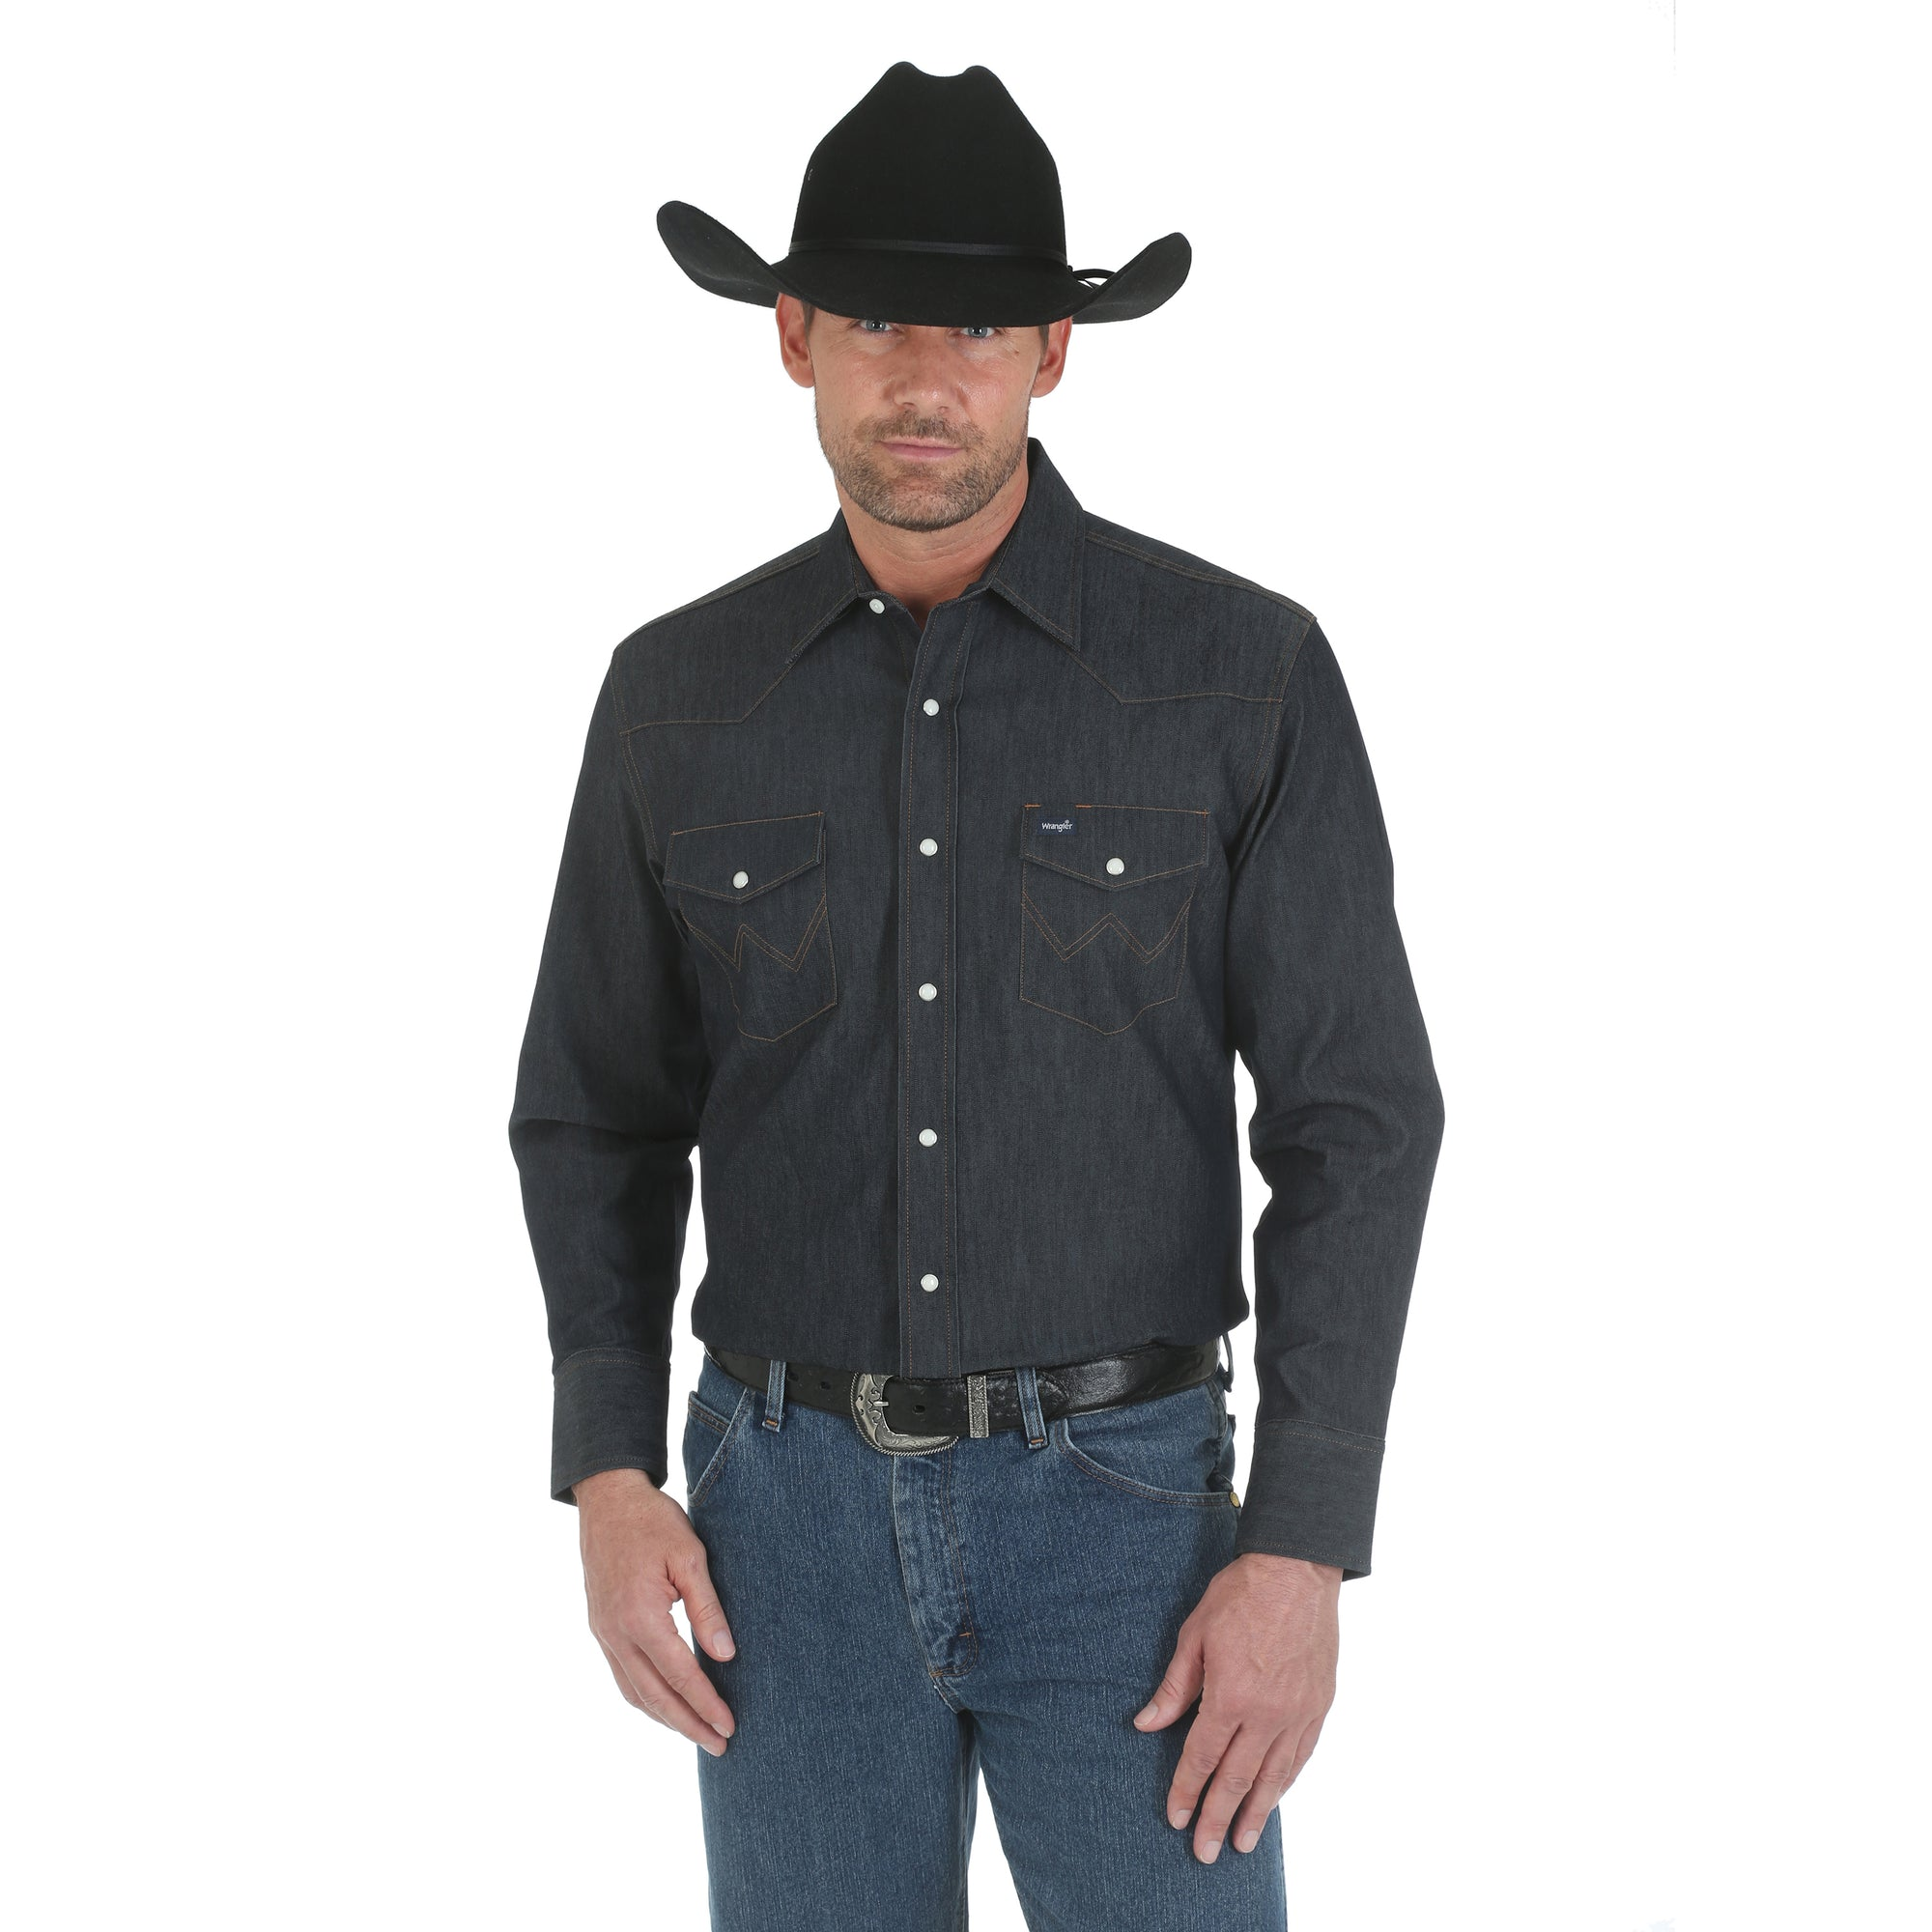 Wrangler Advance Comfort Work Shirt